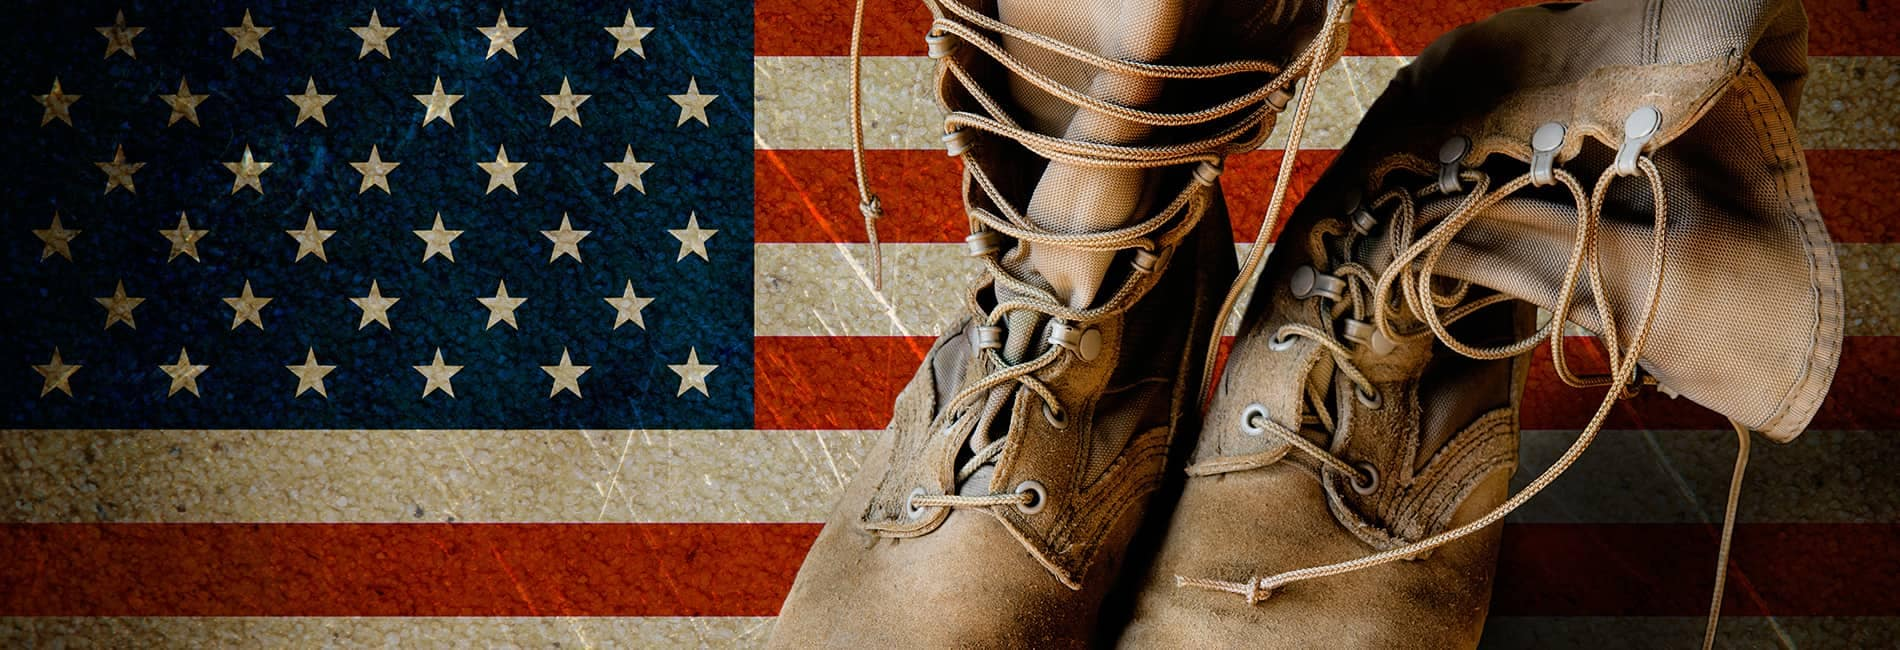 Military style boots on top of an American flag background